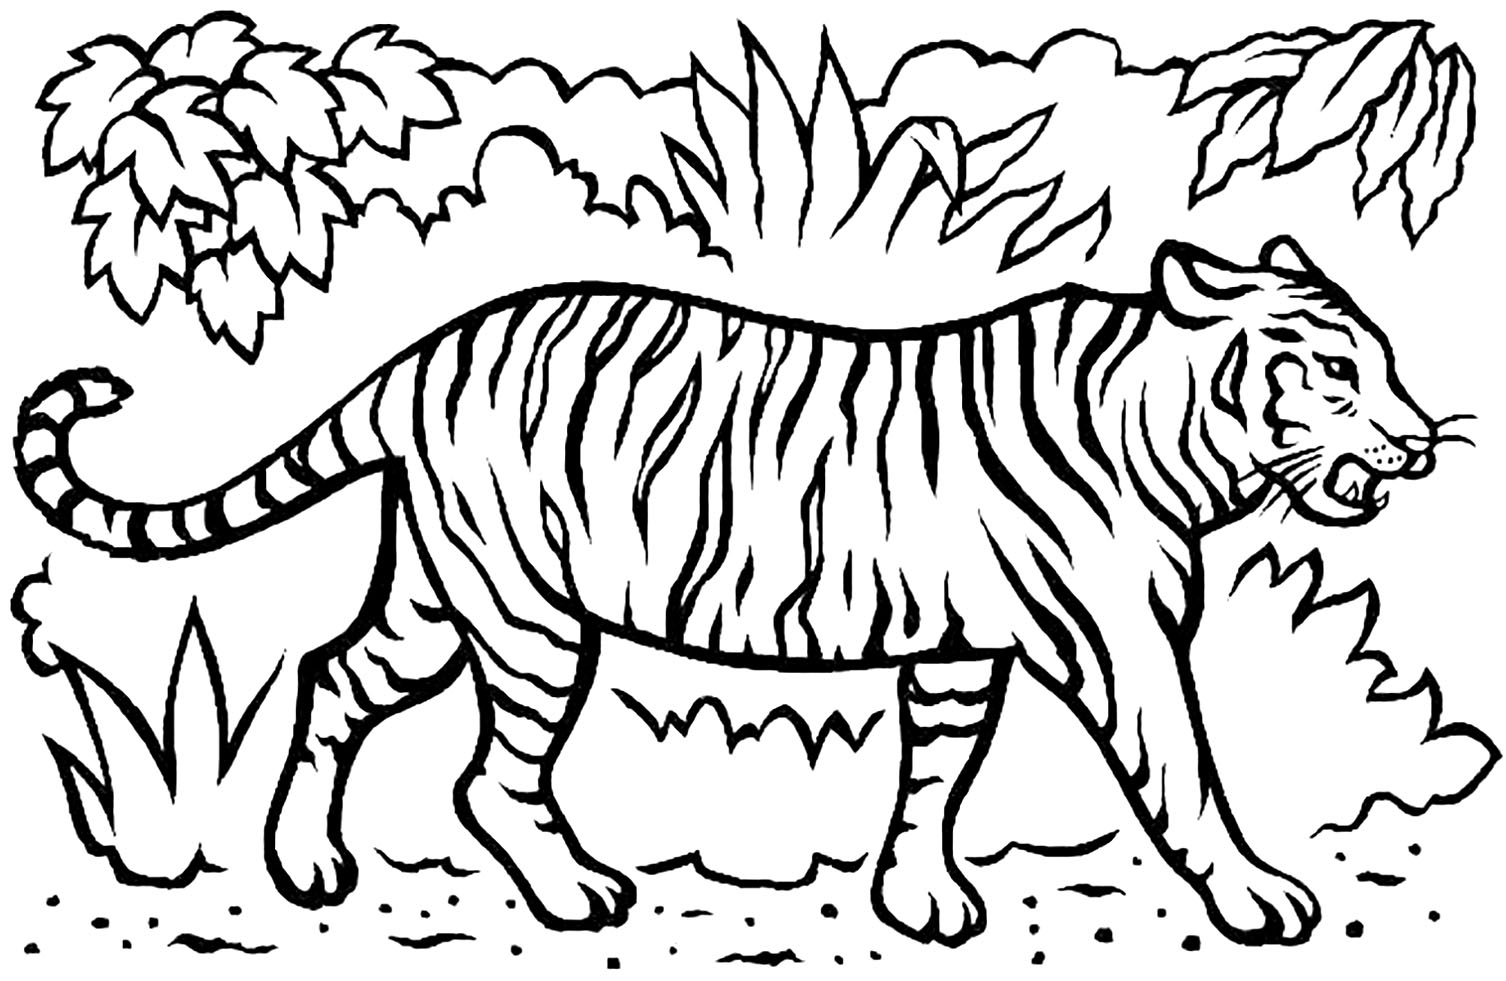 Tigers to download - Tigers Kids Coloring Pages